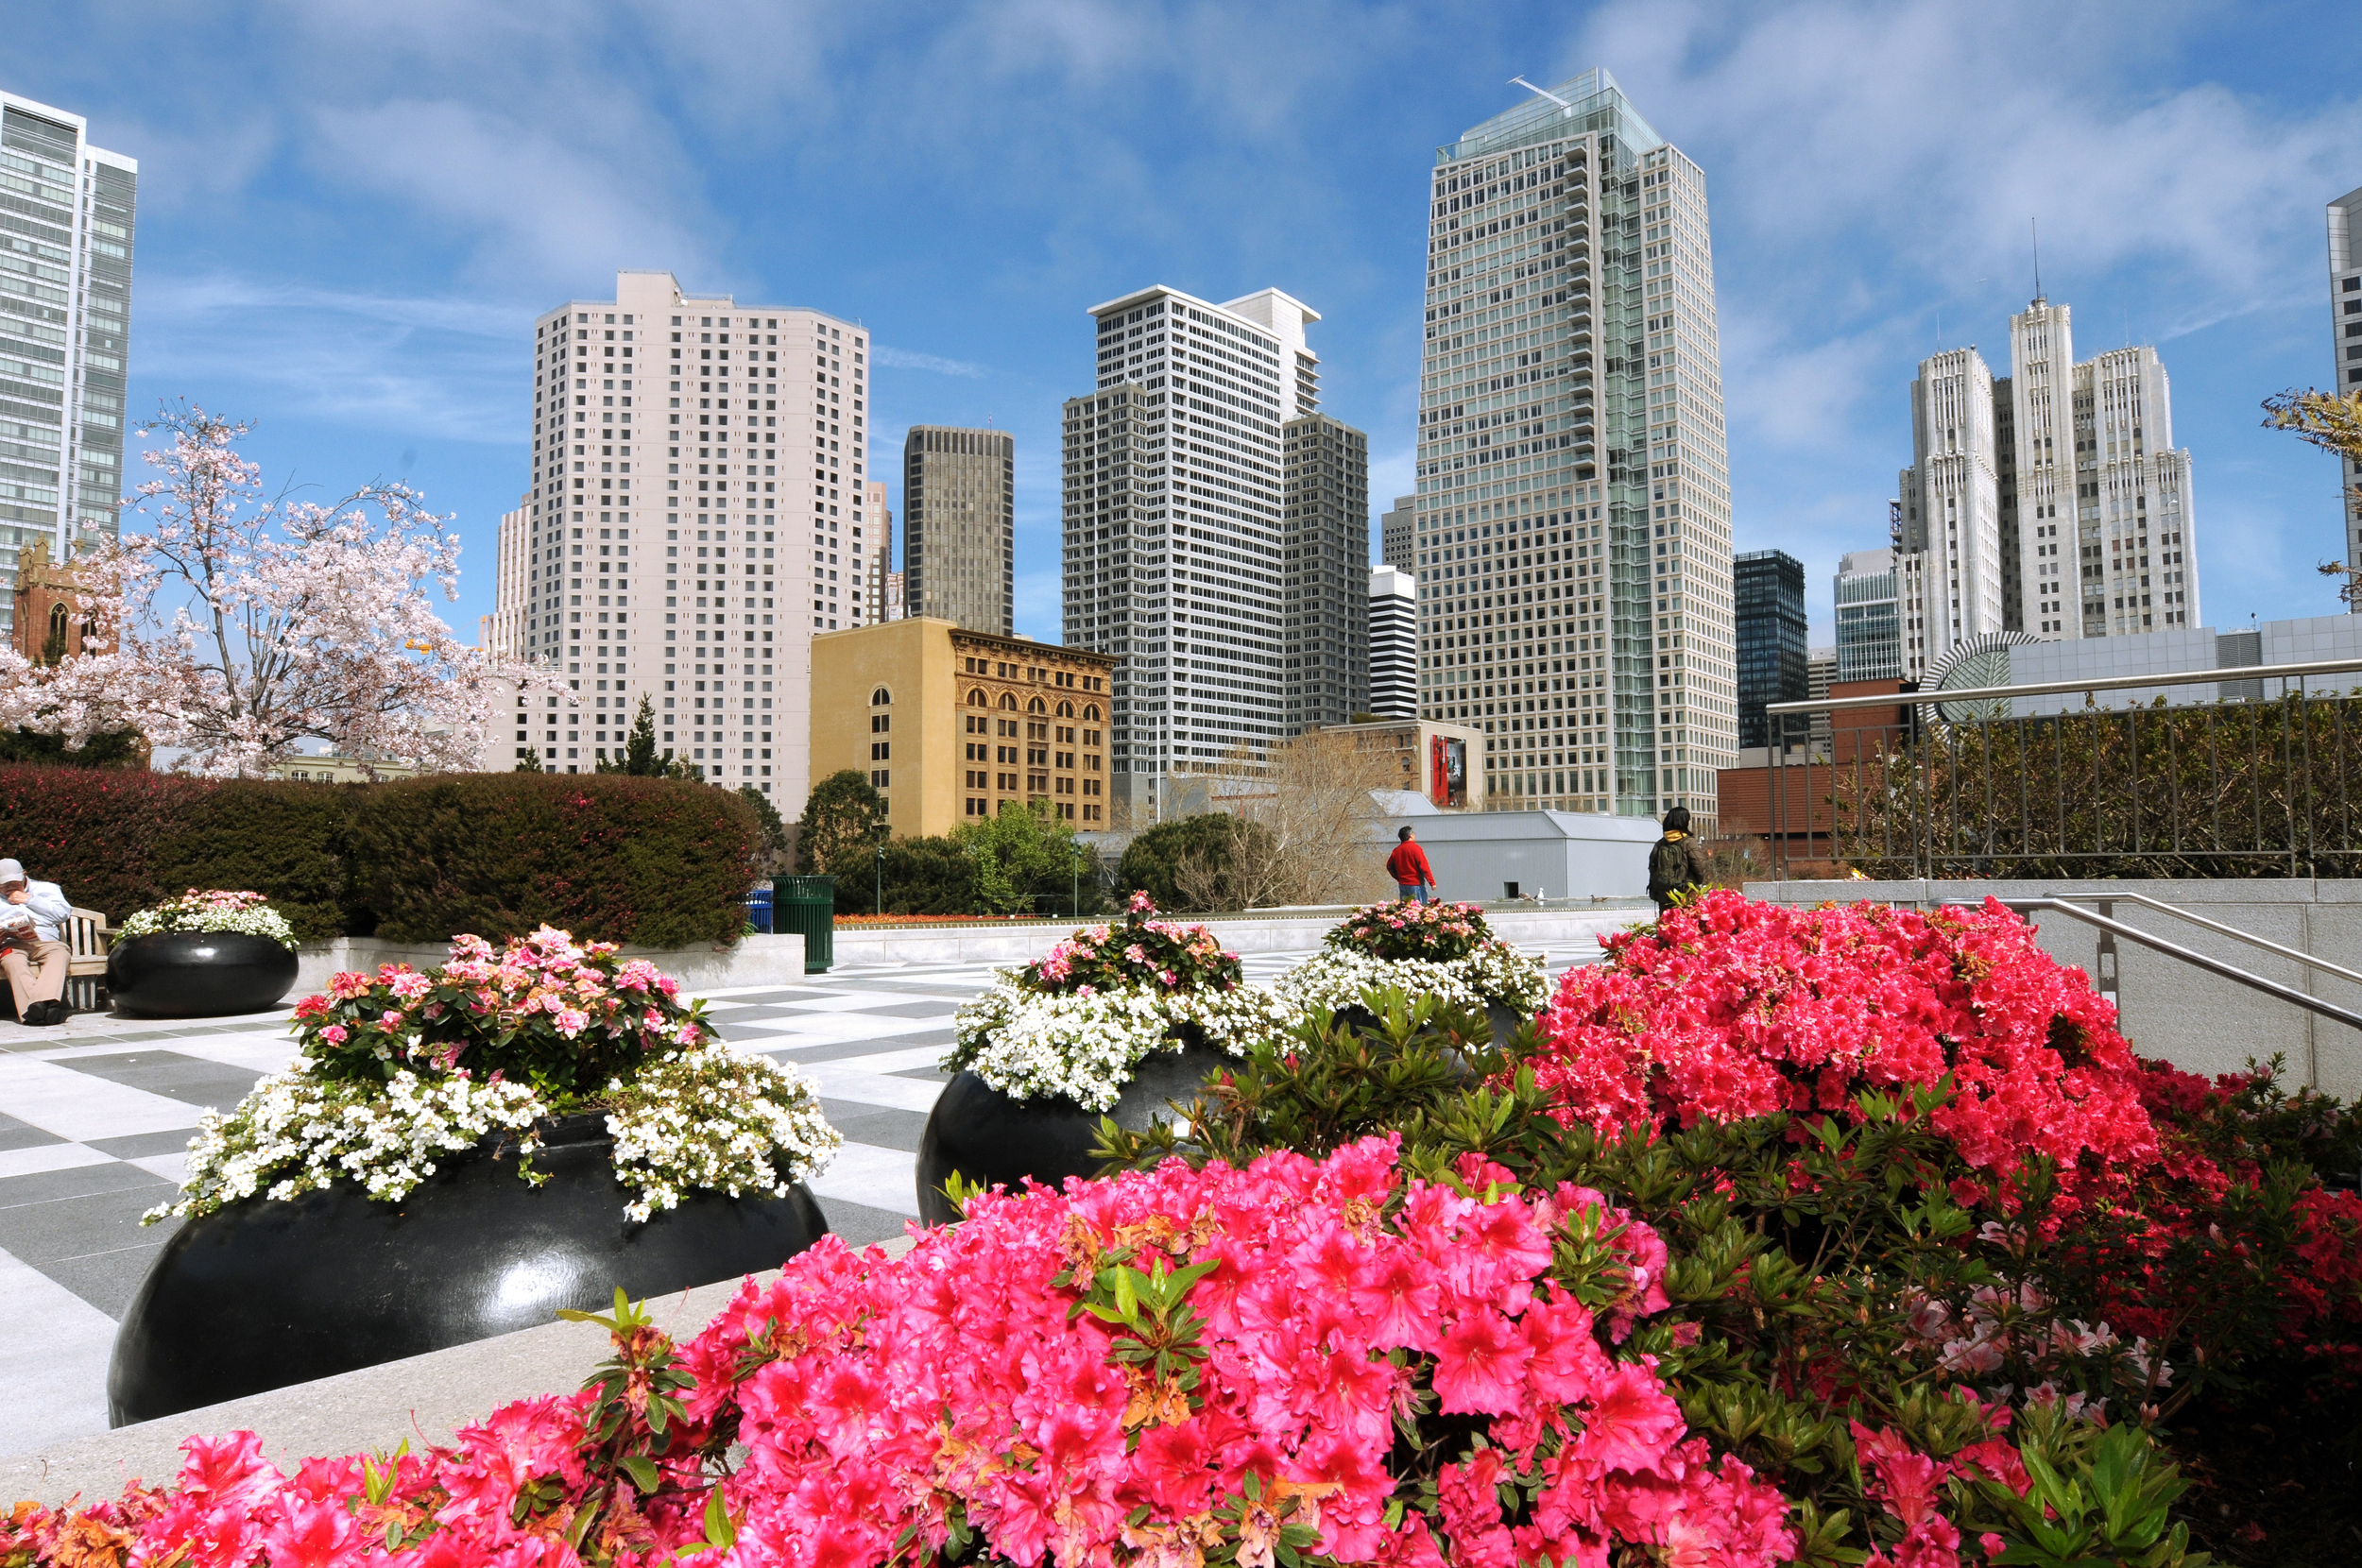 Photo of Yerba Beuna Gardens in SOMA located in San Francisco. Bright pink flower are in the foreground and white flower are also seen in large globe-like planters. Tall city buildings are seen in the background.